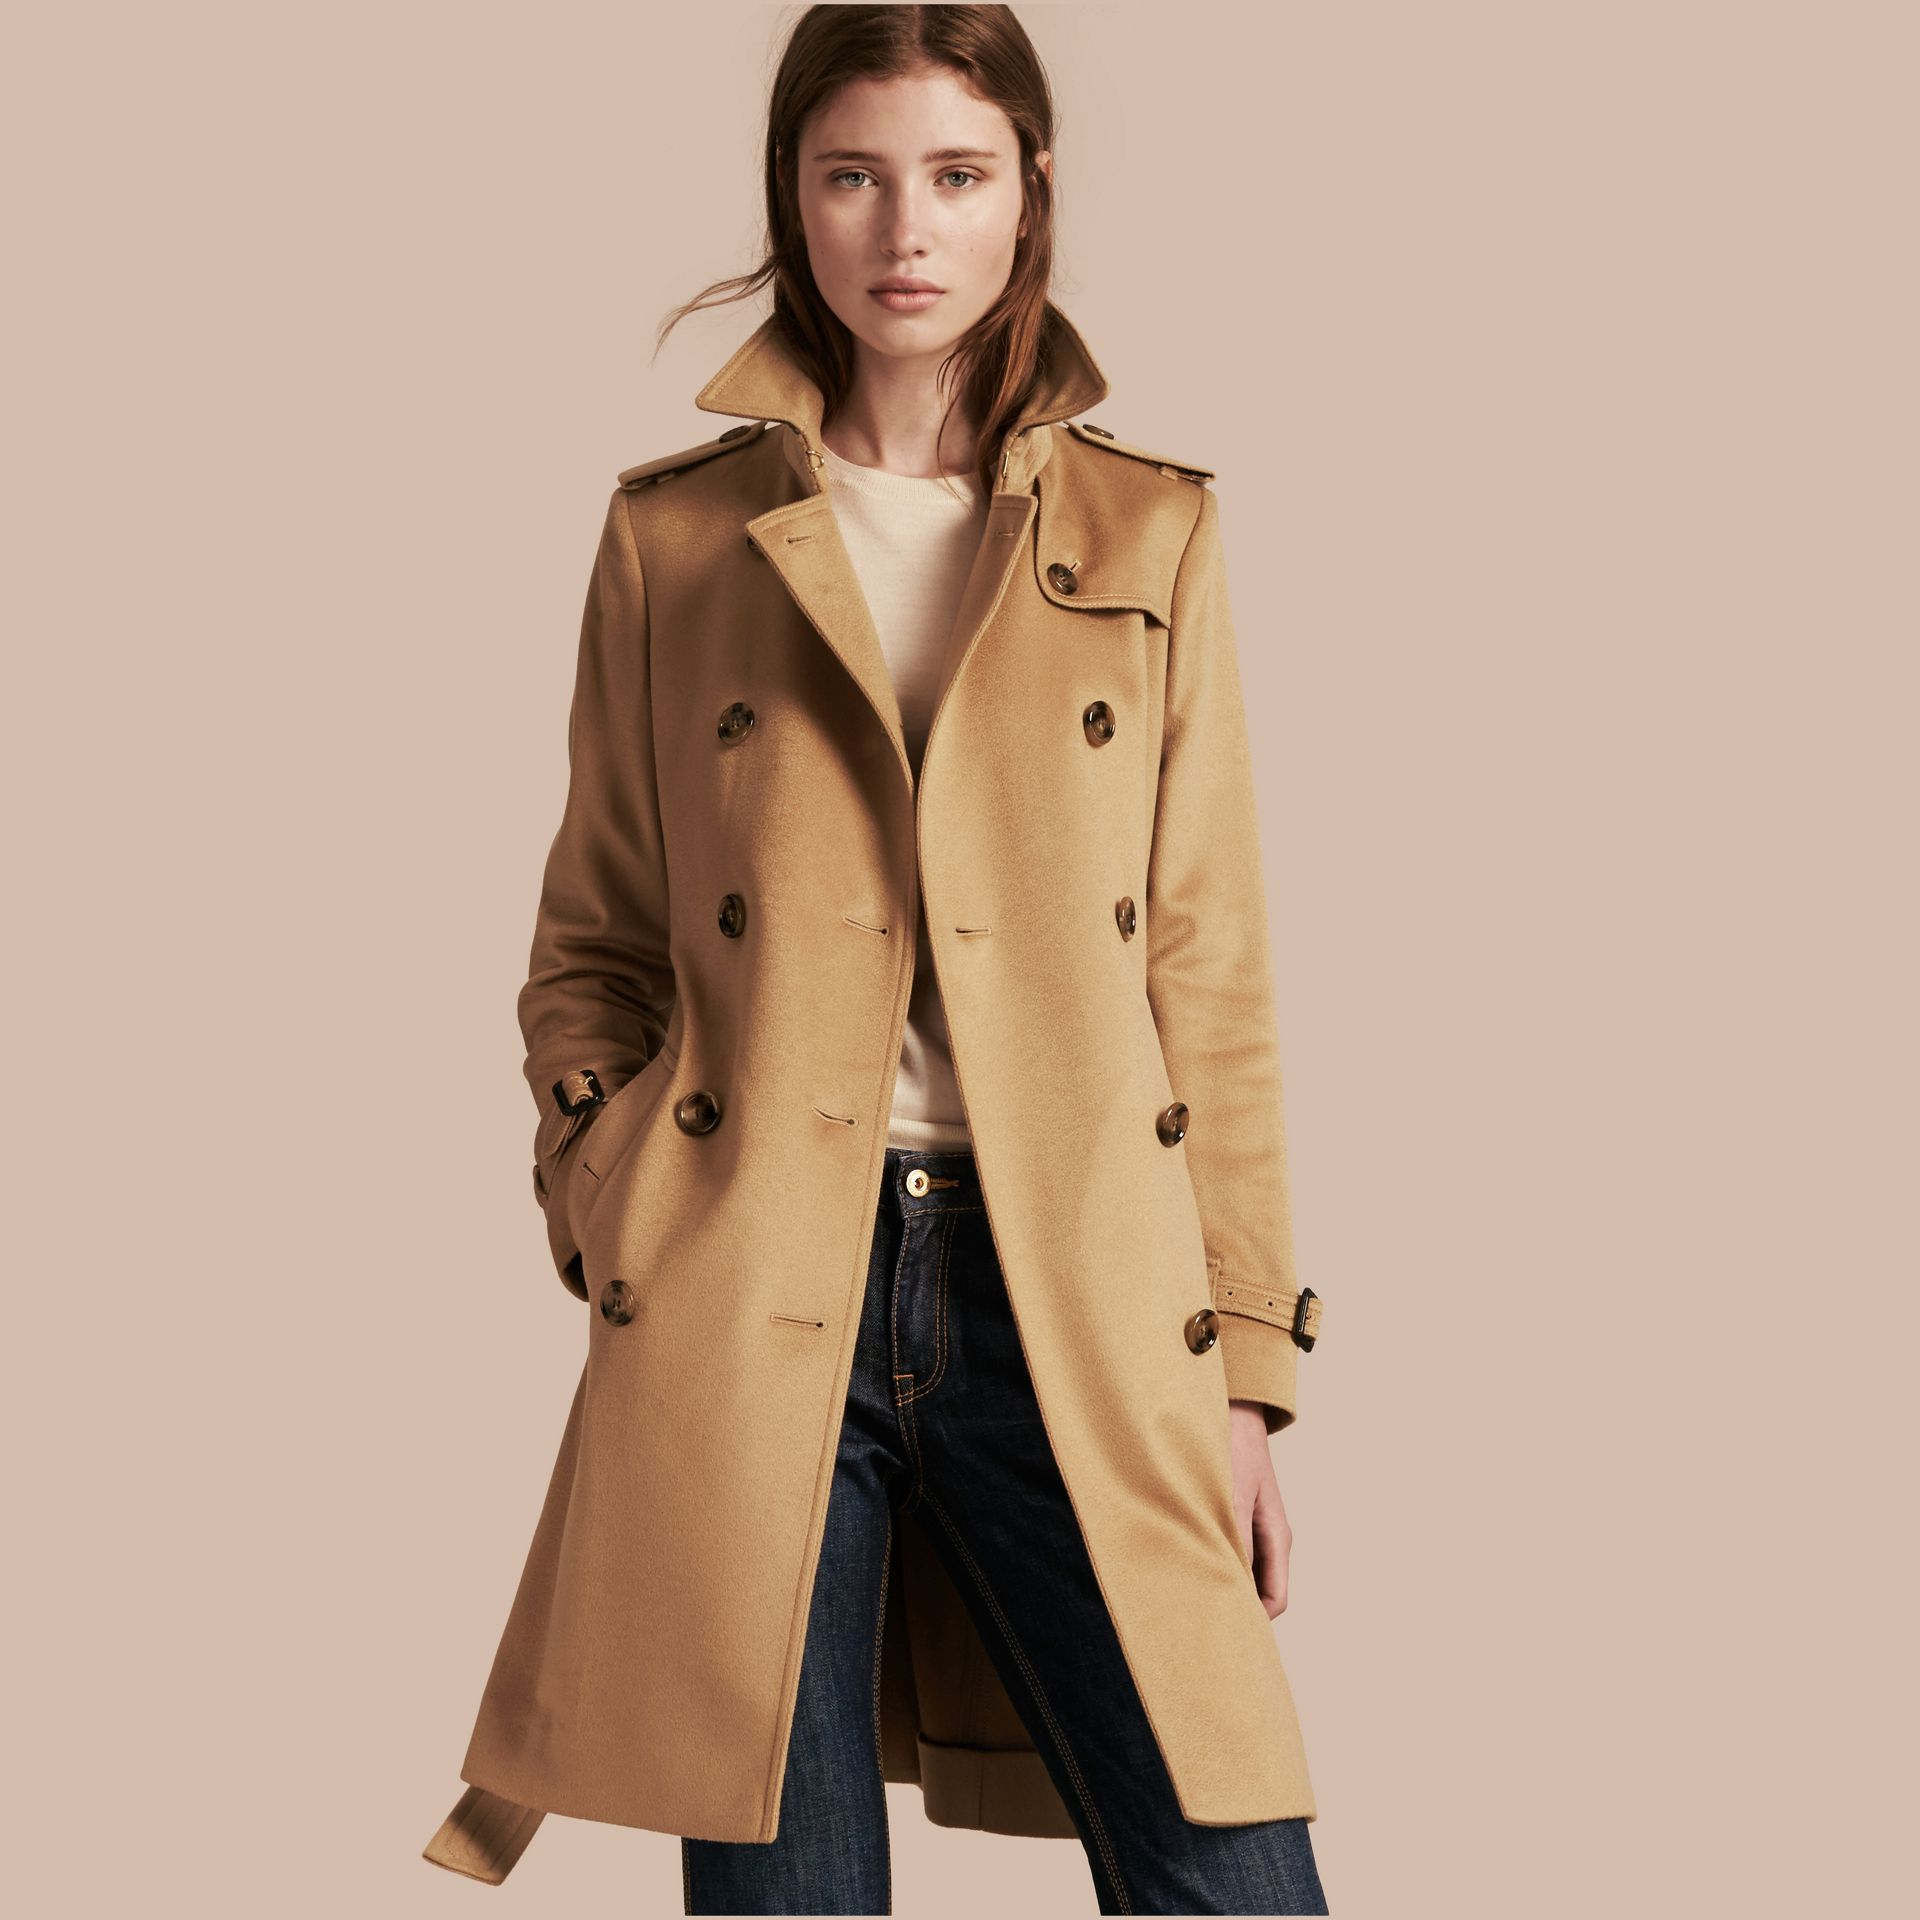 Camel Kensington Fit Cashmere Trench Coat Camel - gallery image 1